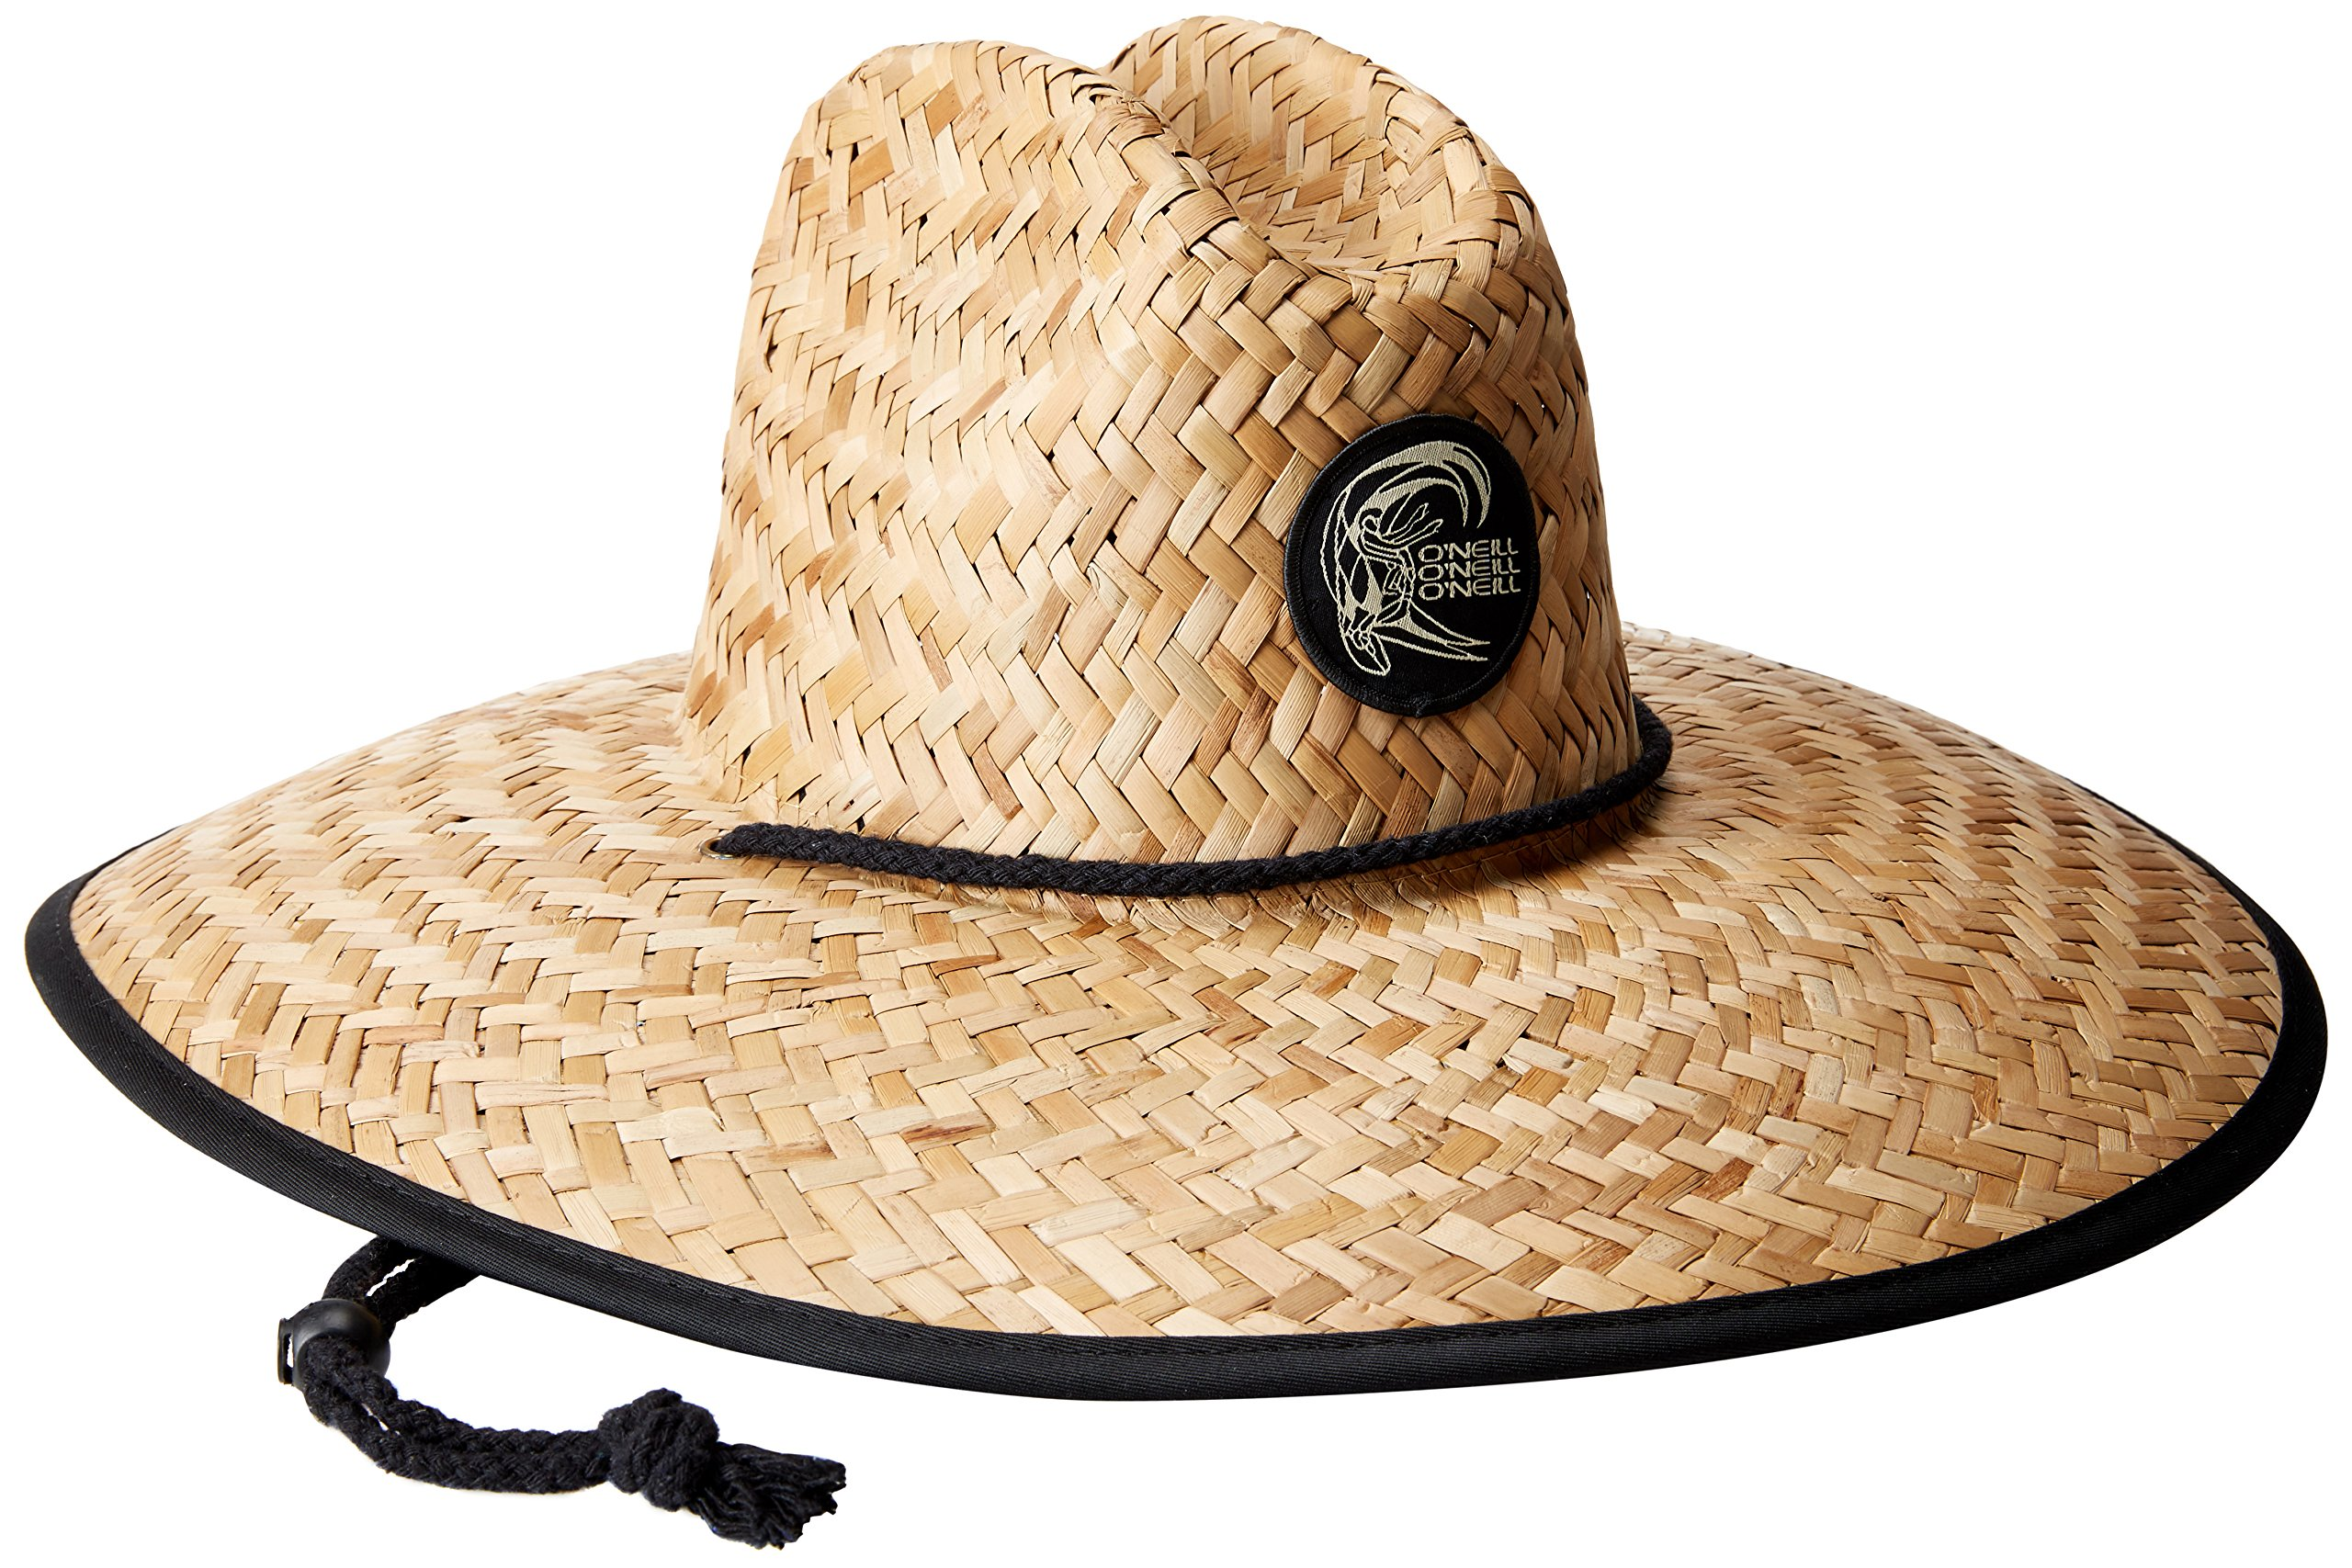 O'Neill Men's Sonoma Prints Straw Hat, Naturl1, One Size